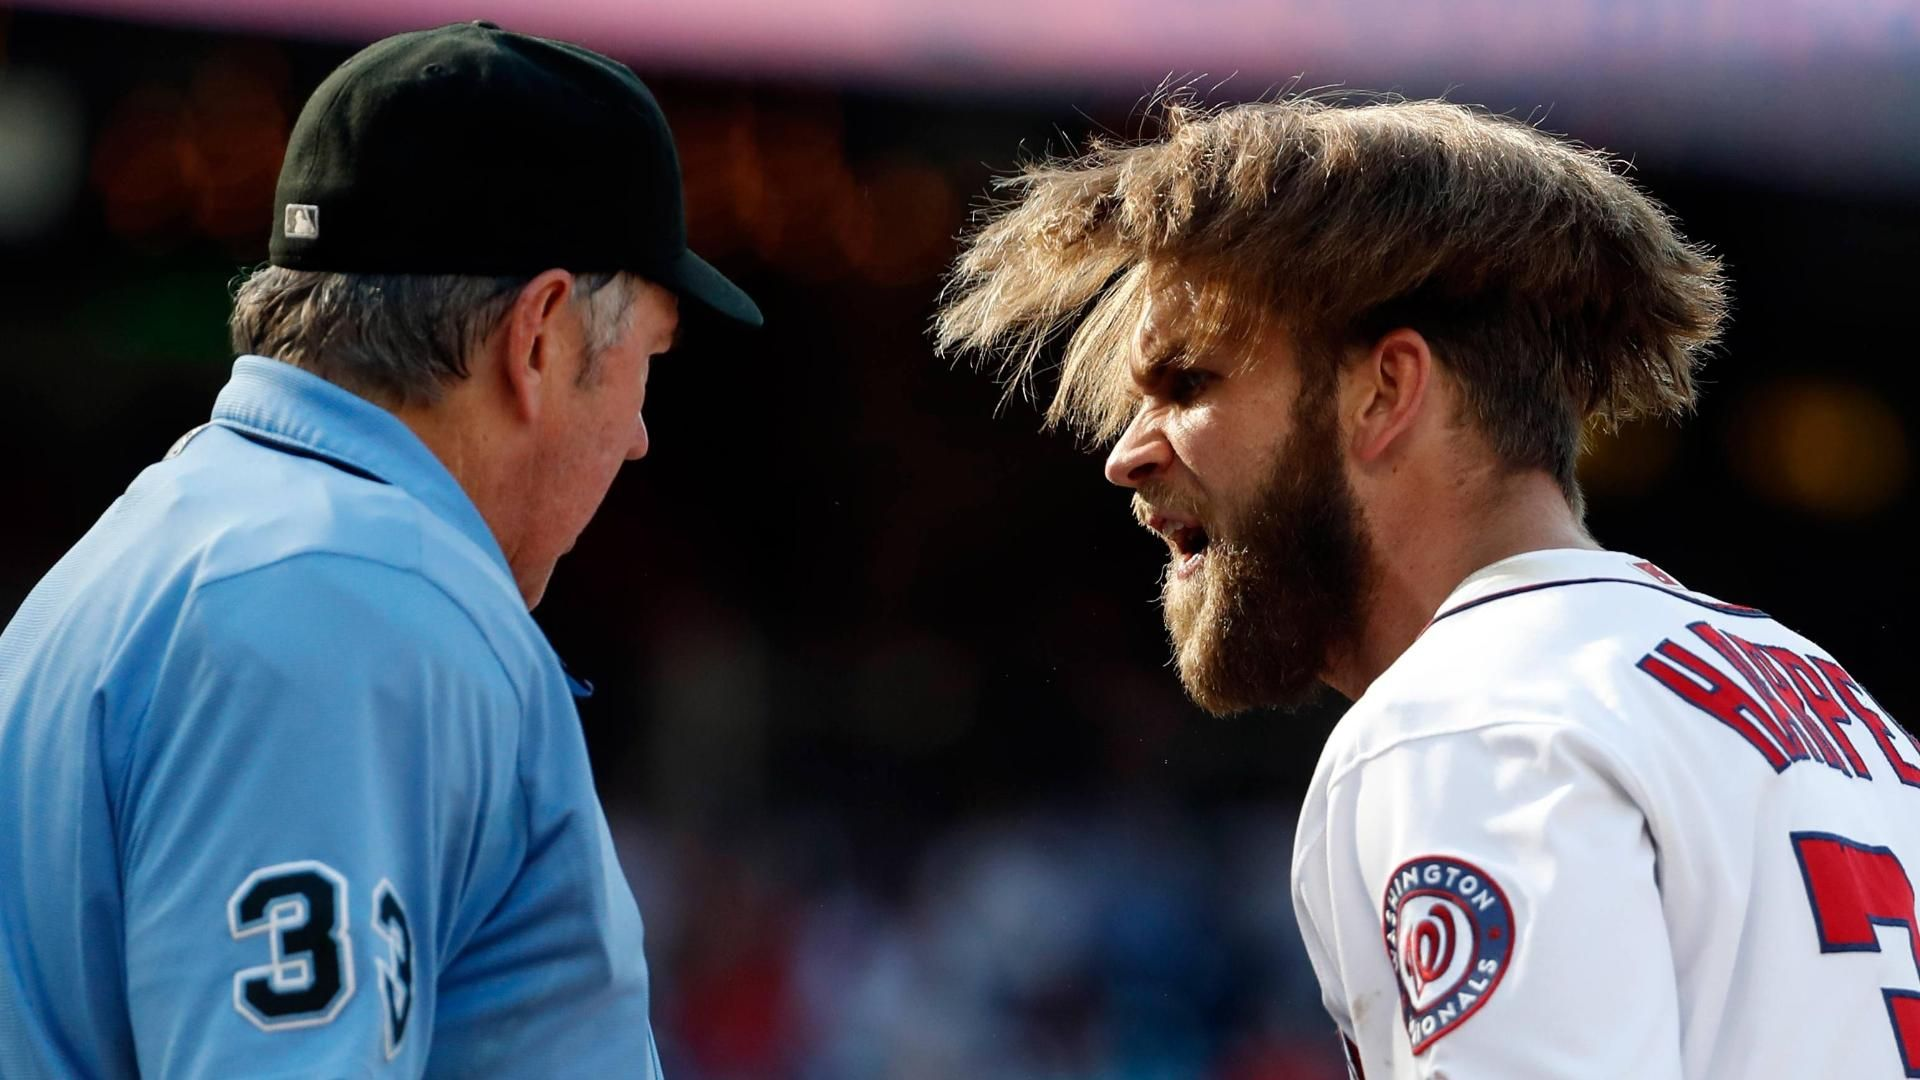 https://secure.espncdn.com/combiner/i?img=/media/motion/2016/0827/dm_160827_MLB_Nationals_Bryce_Harper_Ejected1382/dm_160827_MLB_Nationals_Bryce_Harper_Ejected1382.jpg